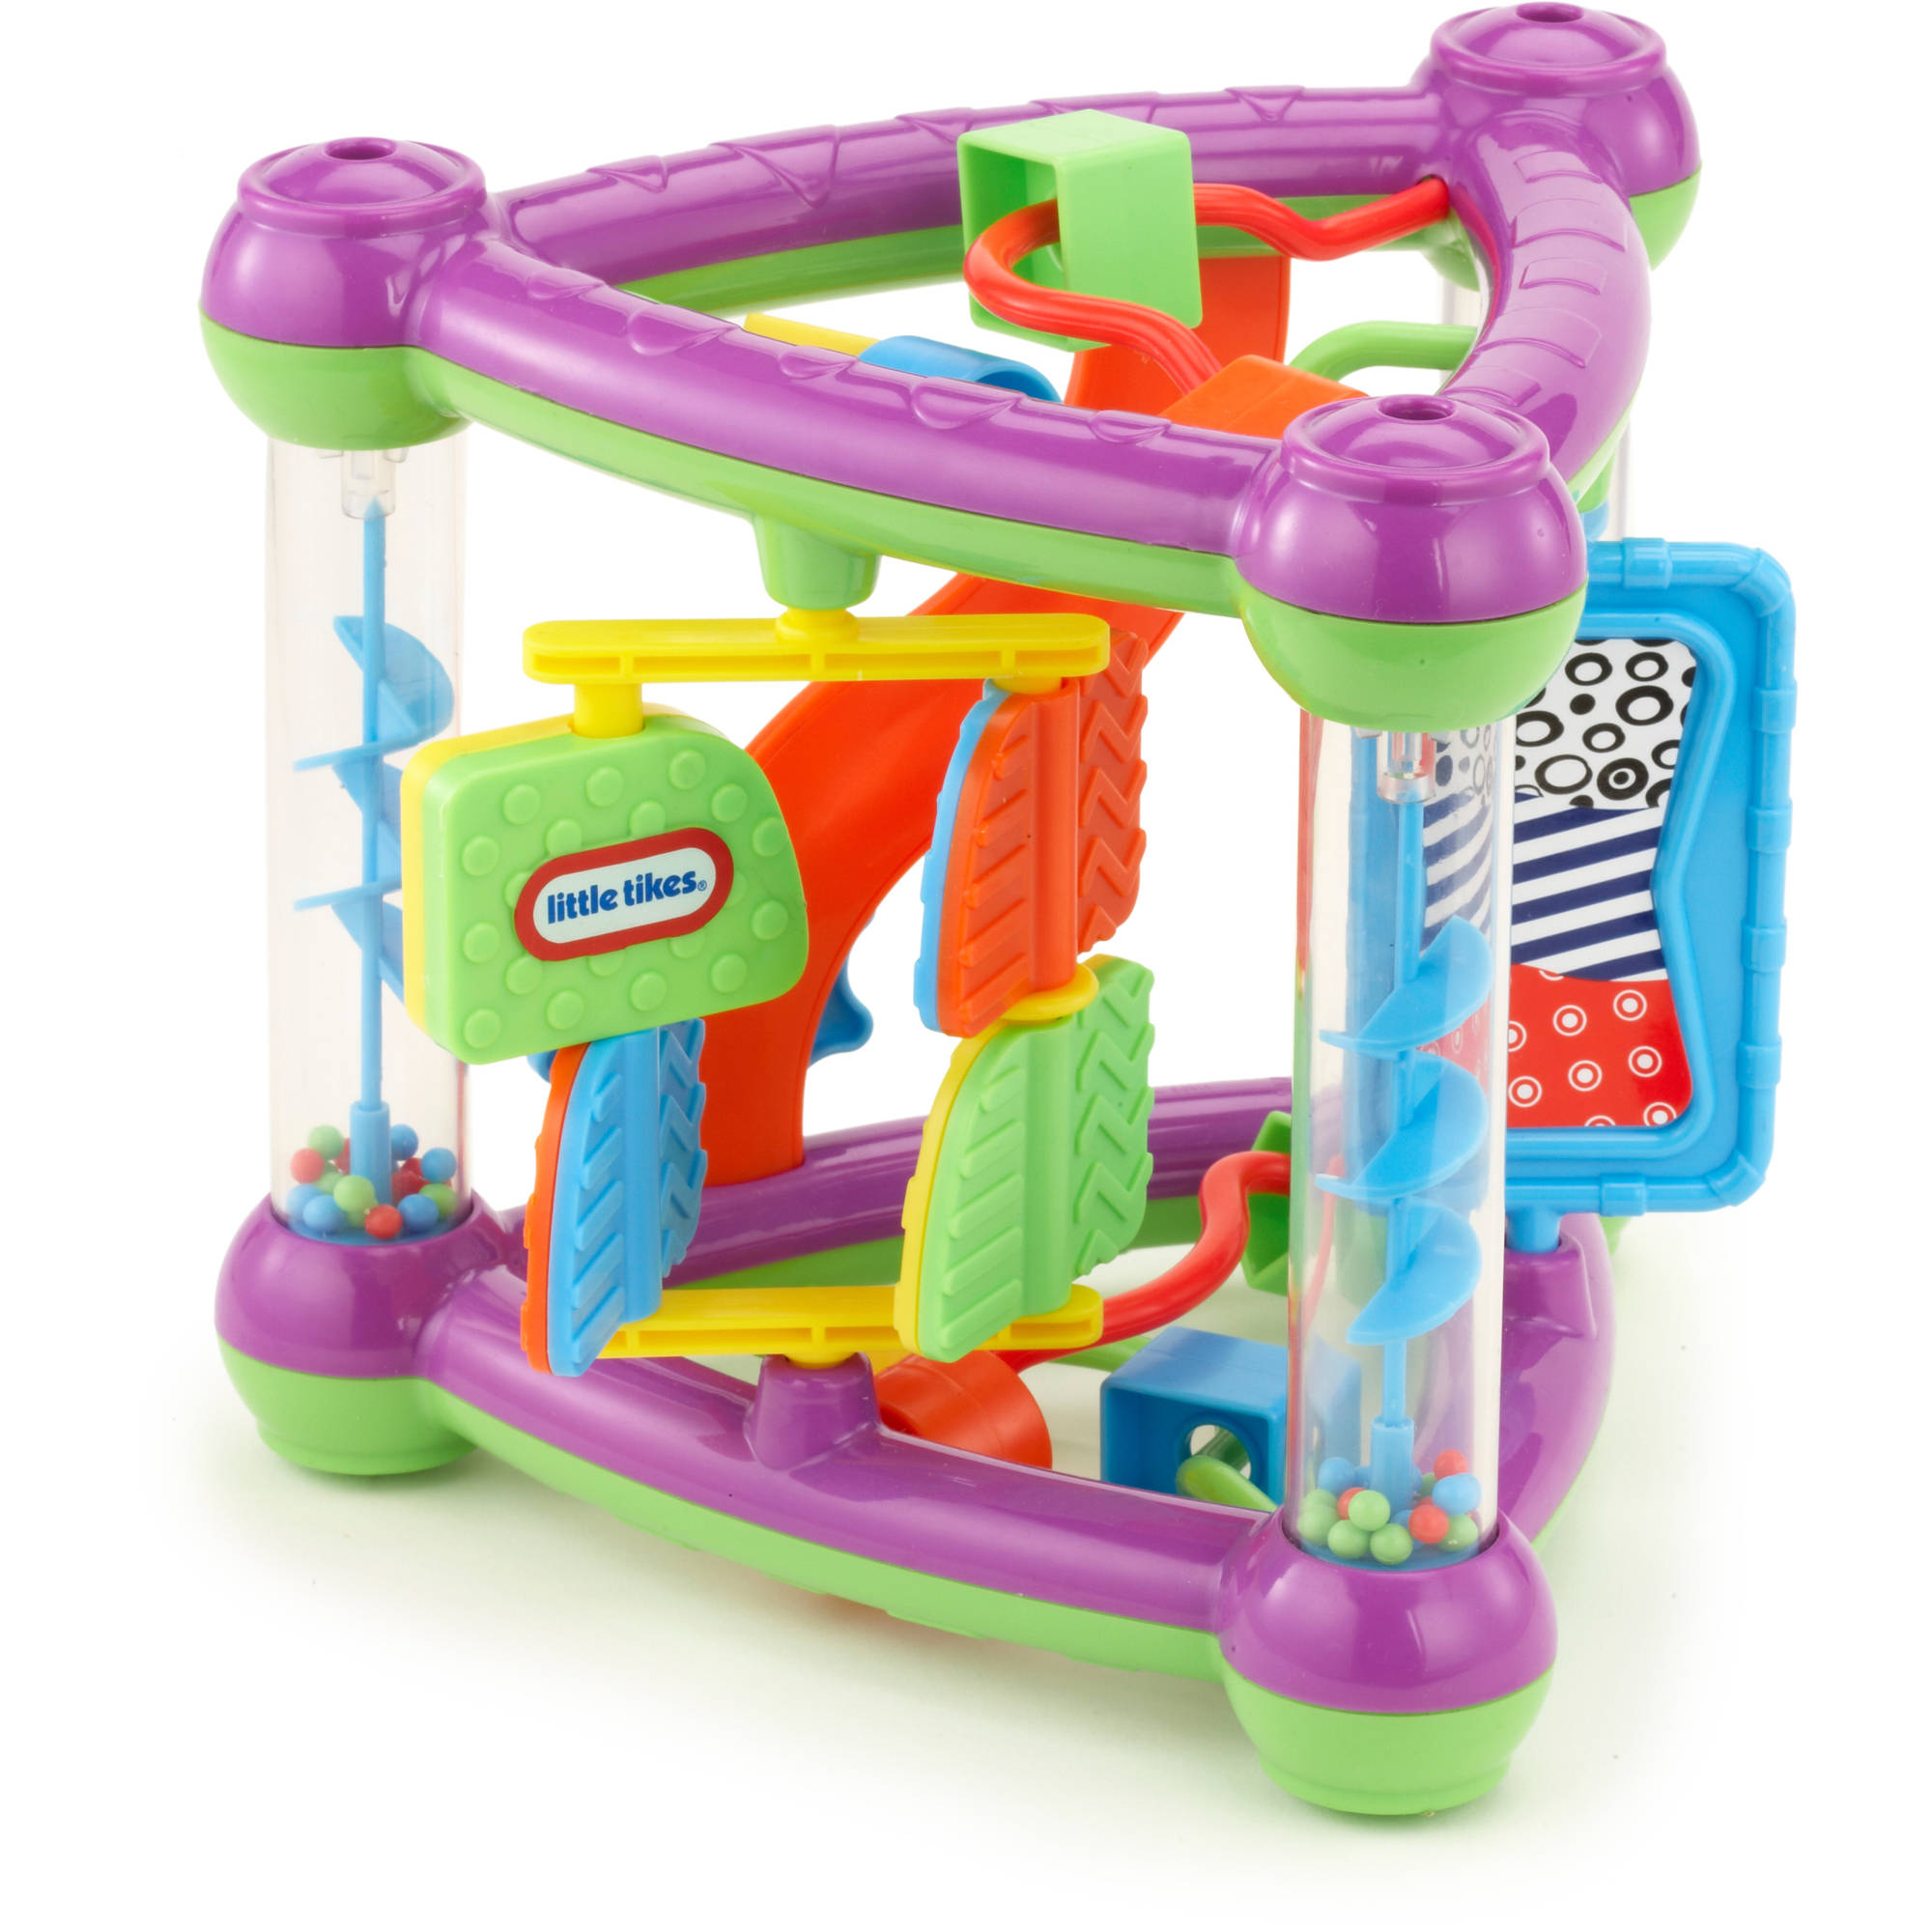 Little Tikes Play Triangle, Purple Green by Little Tikes